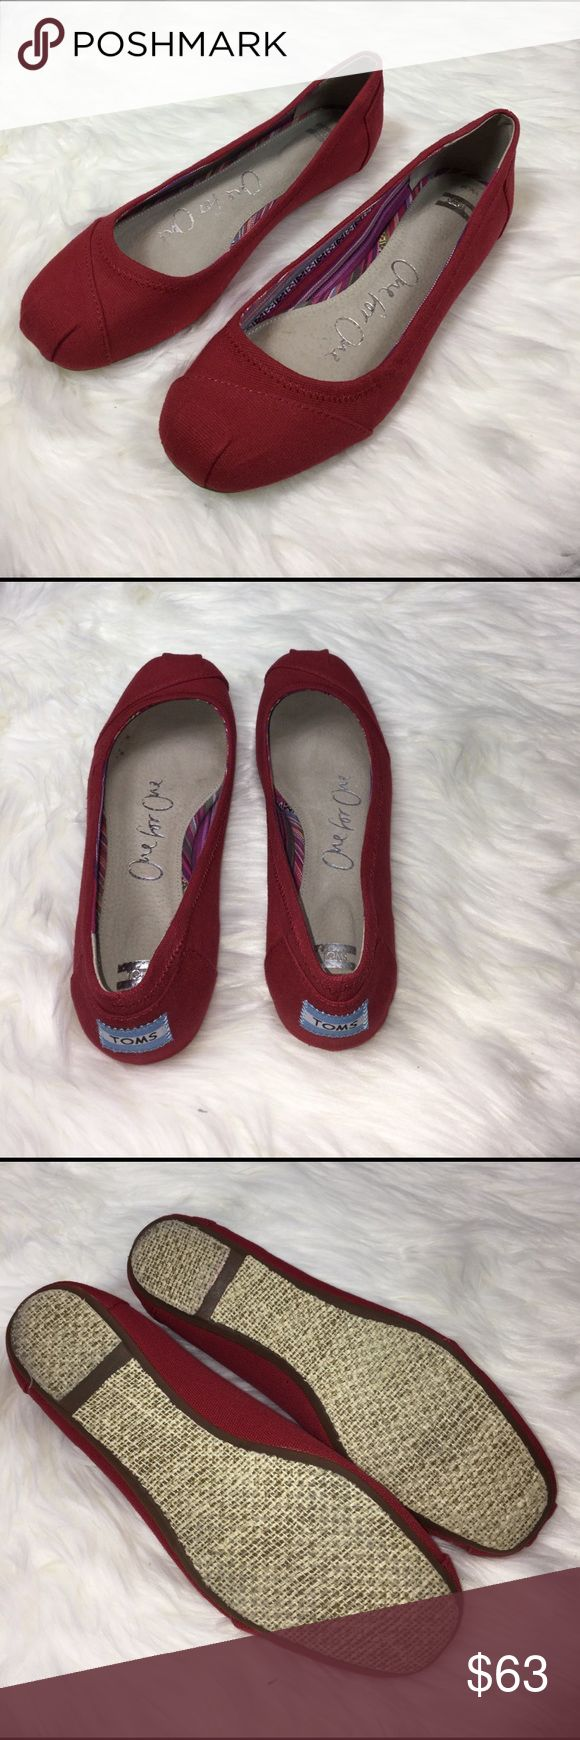 Red burlap TOMS ballet flats Break out the dancing shoes—it's time to celebrate. The cushioned insole on this ballet flat will keep feet comfortable from the first step to the last dance. Size 8. Red burlap upper Cushioned insole for all-day comfort Rubber outsole TOMS Shoes Flats & Loafers